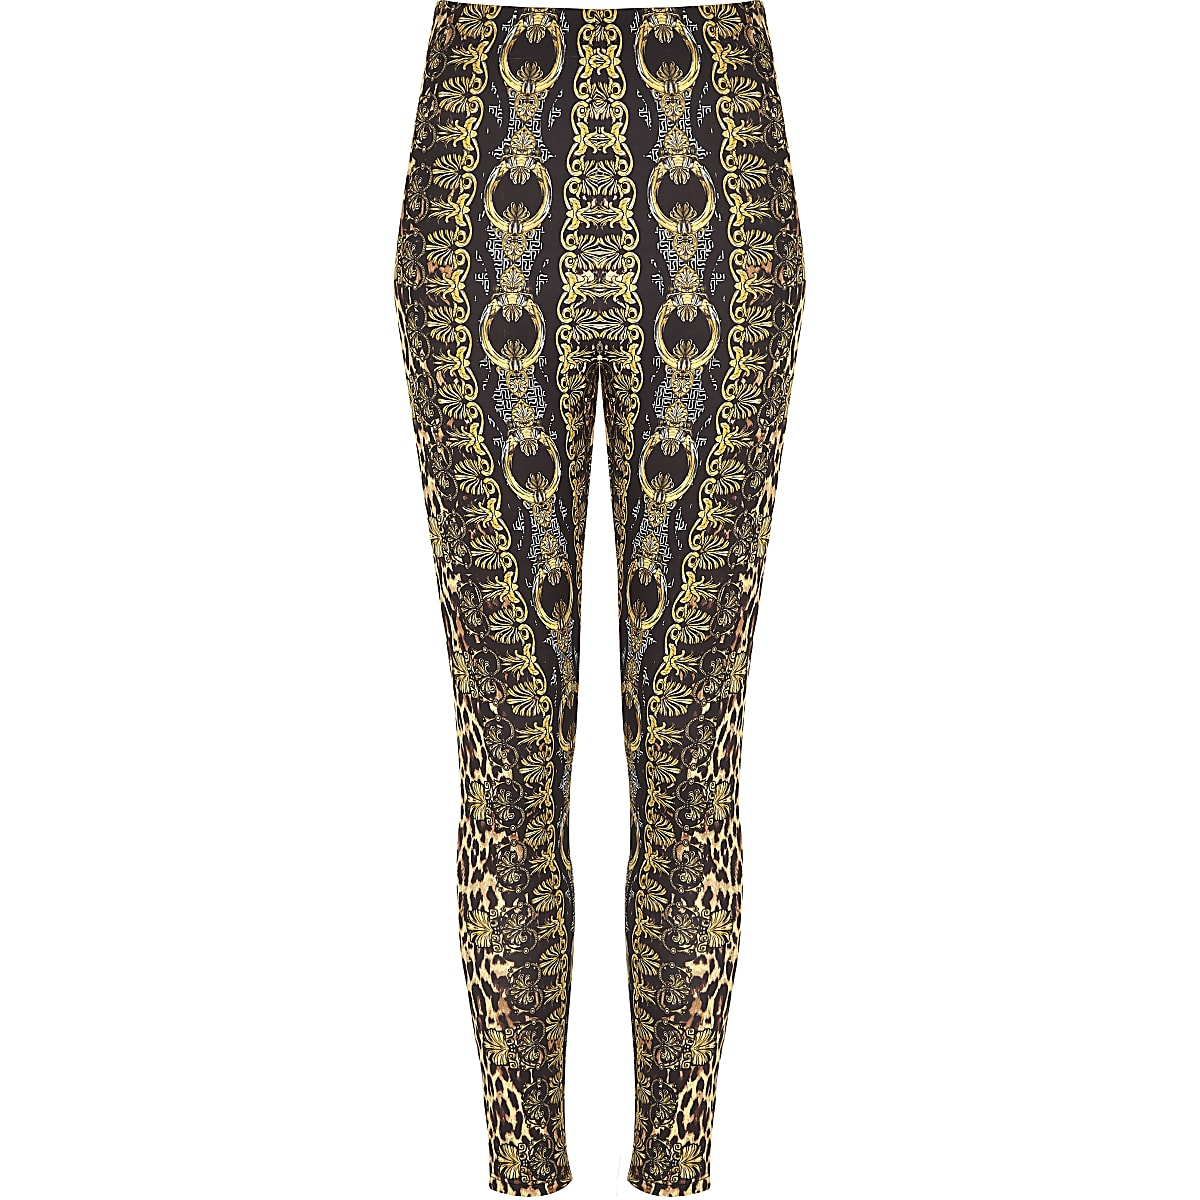 0deb8bee528378 Braune Leggings mit Leoparden-Print - Leggings - Hosen - Damen